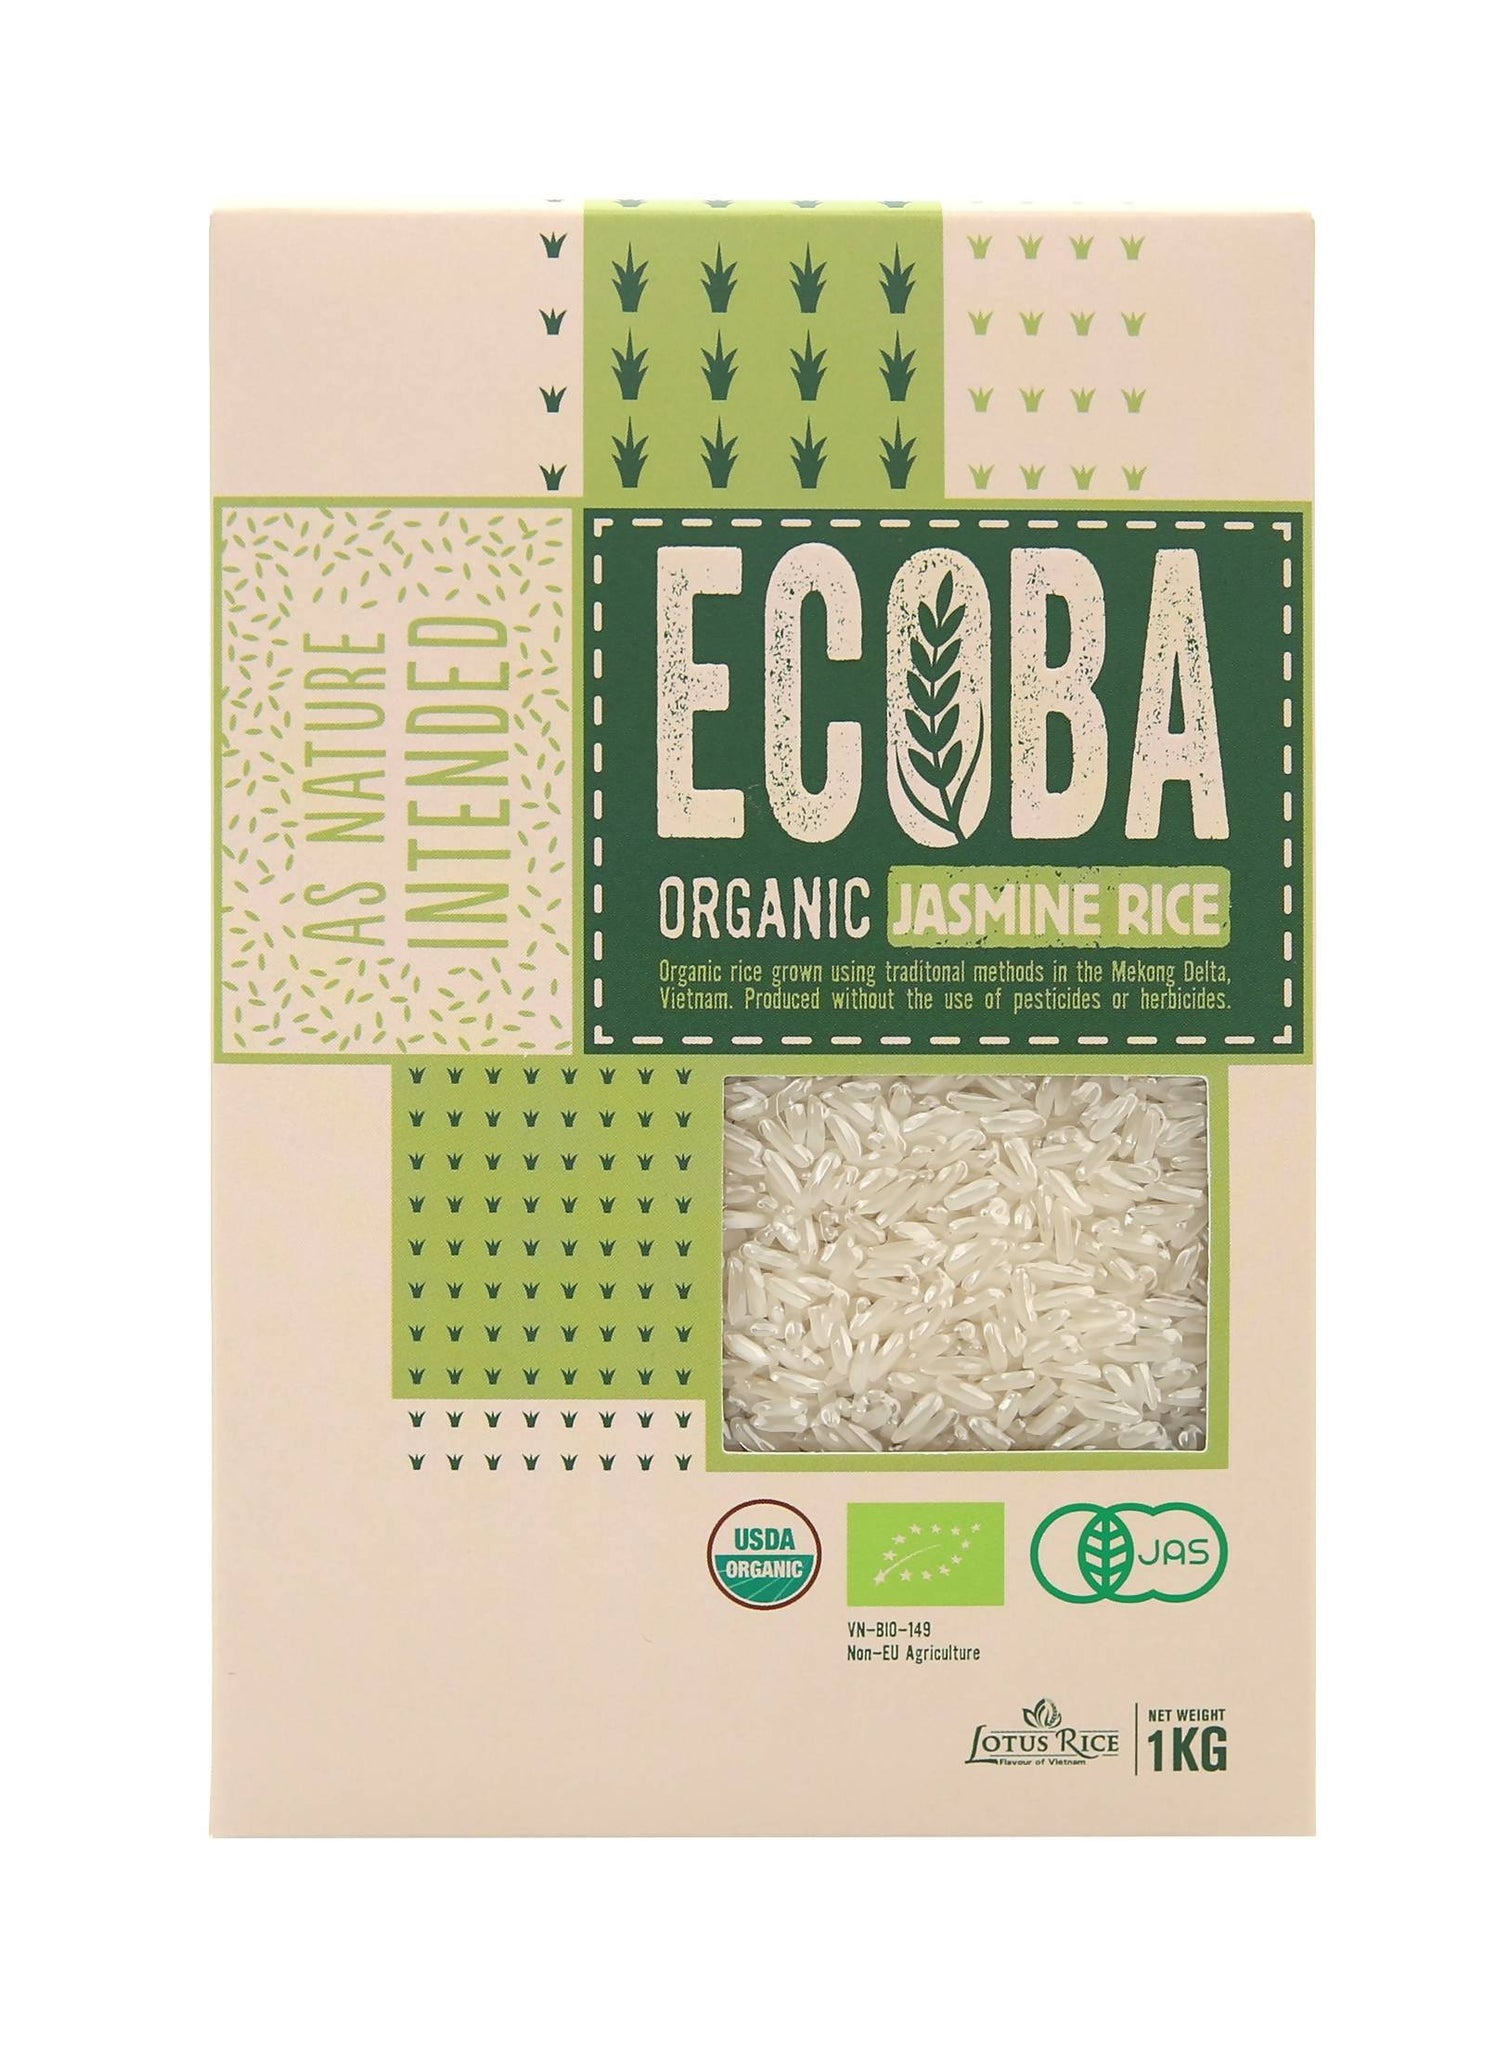 ECOBA Organic Long Grain Jasmine Rice, 35oz (1.000g) - Vietnam Delecious Rice, Finest Natural, 3 Organic Certifications USDA - JAS - EU